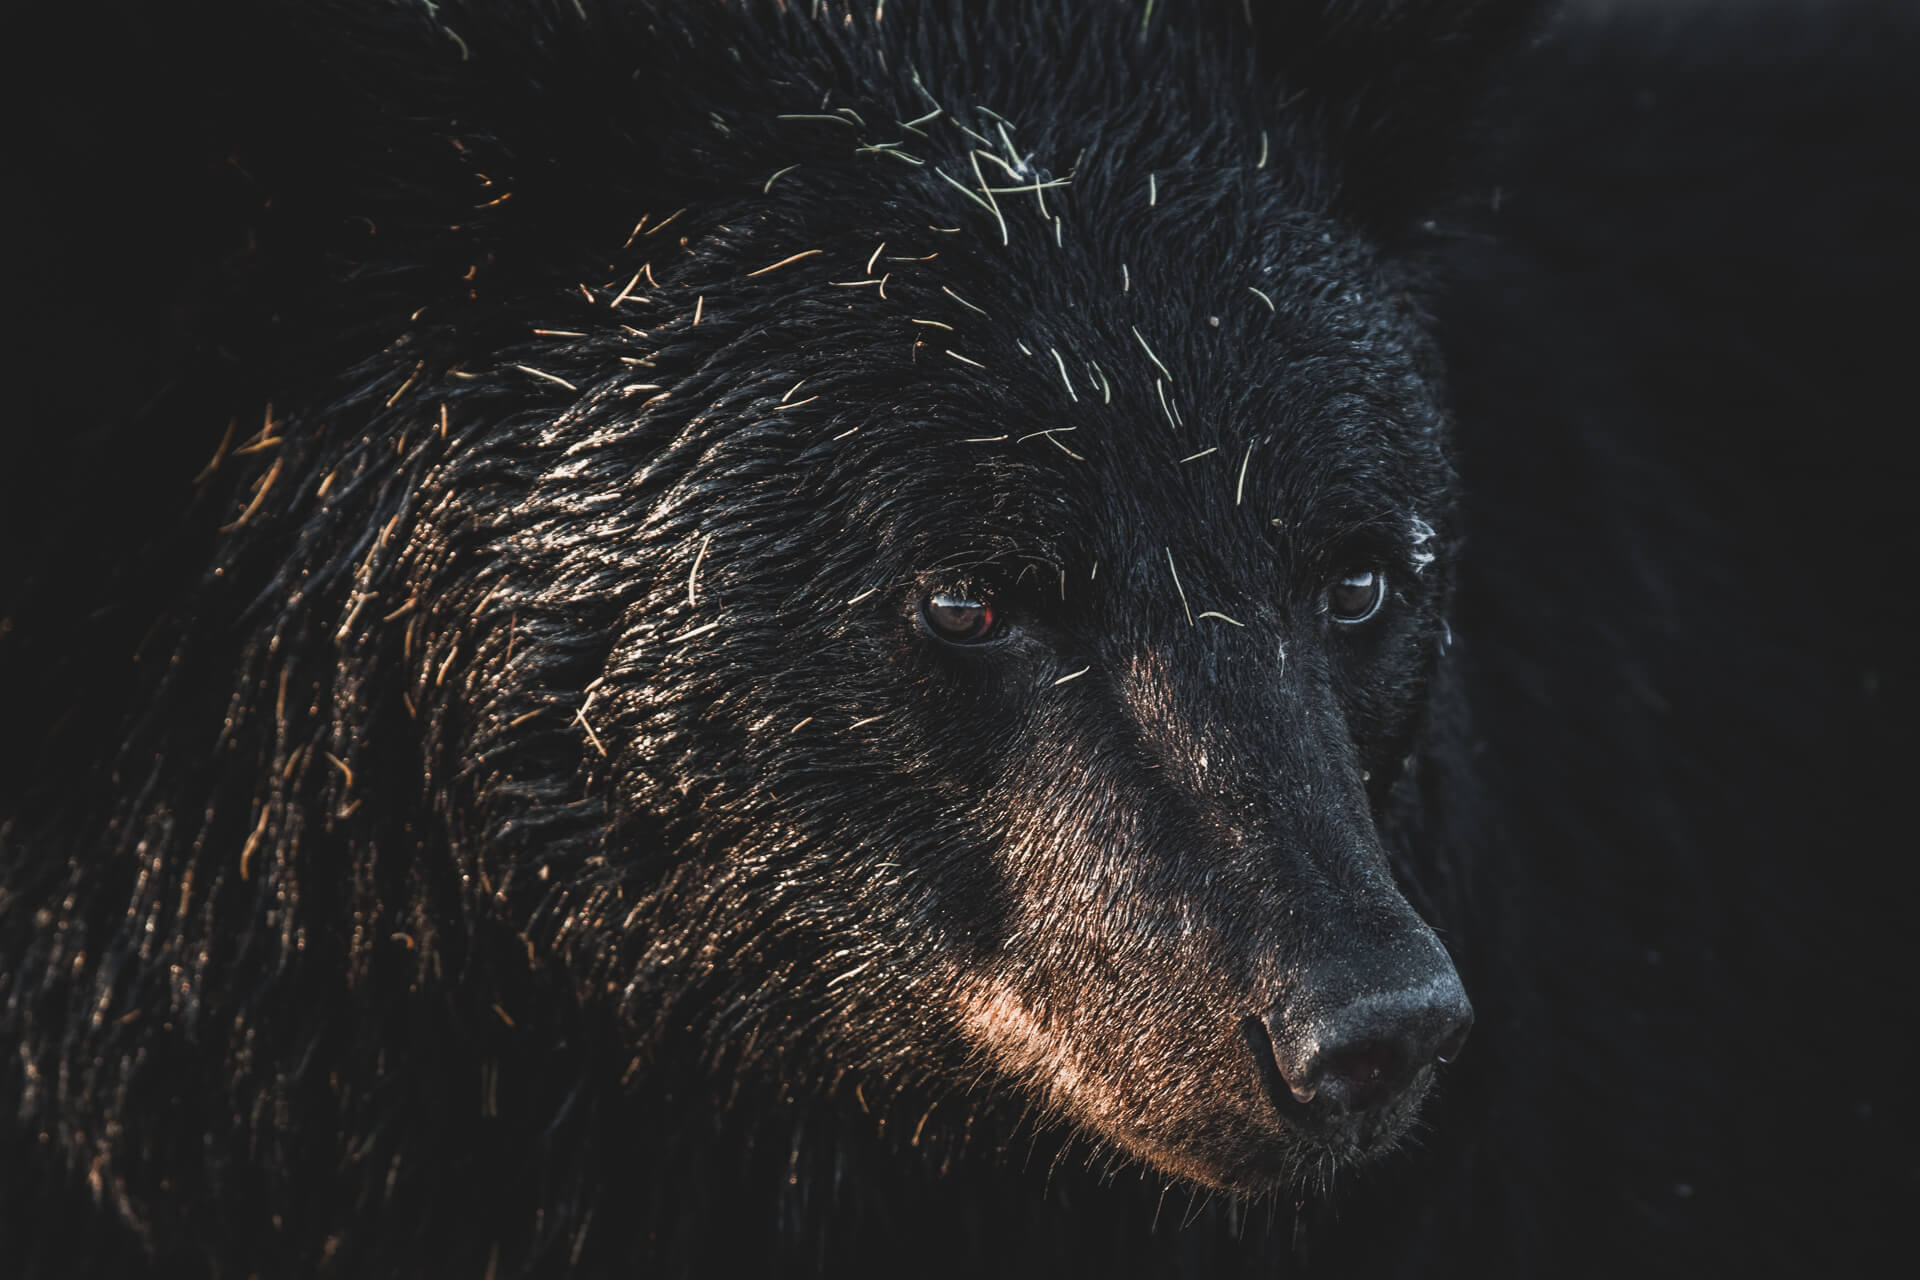 Portrait of a Blackbear